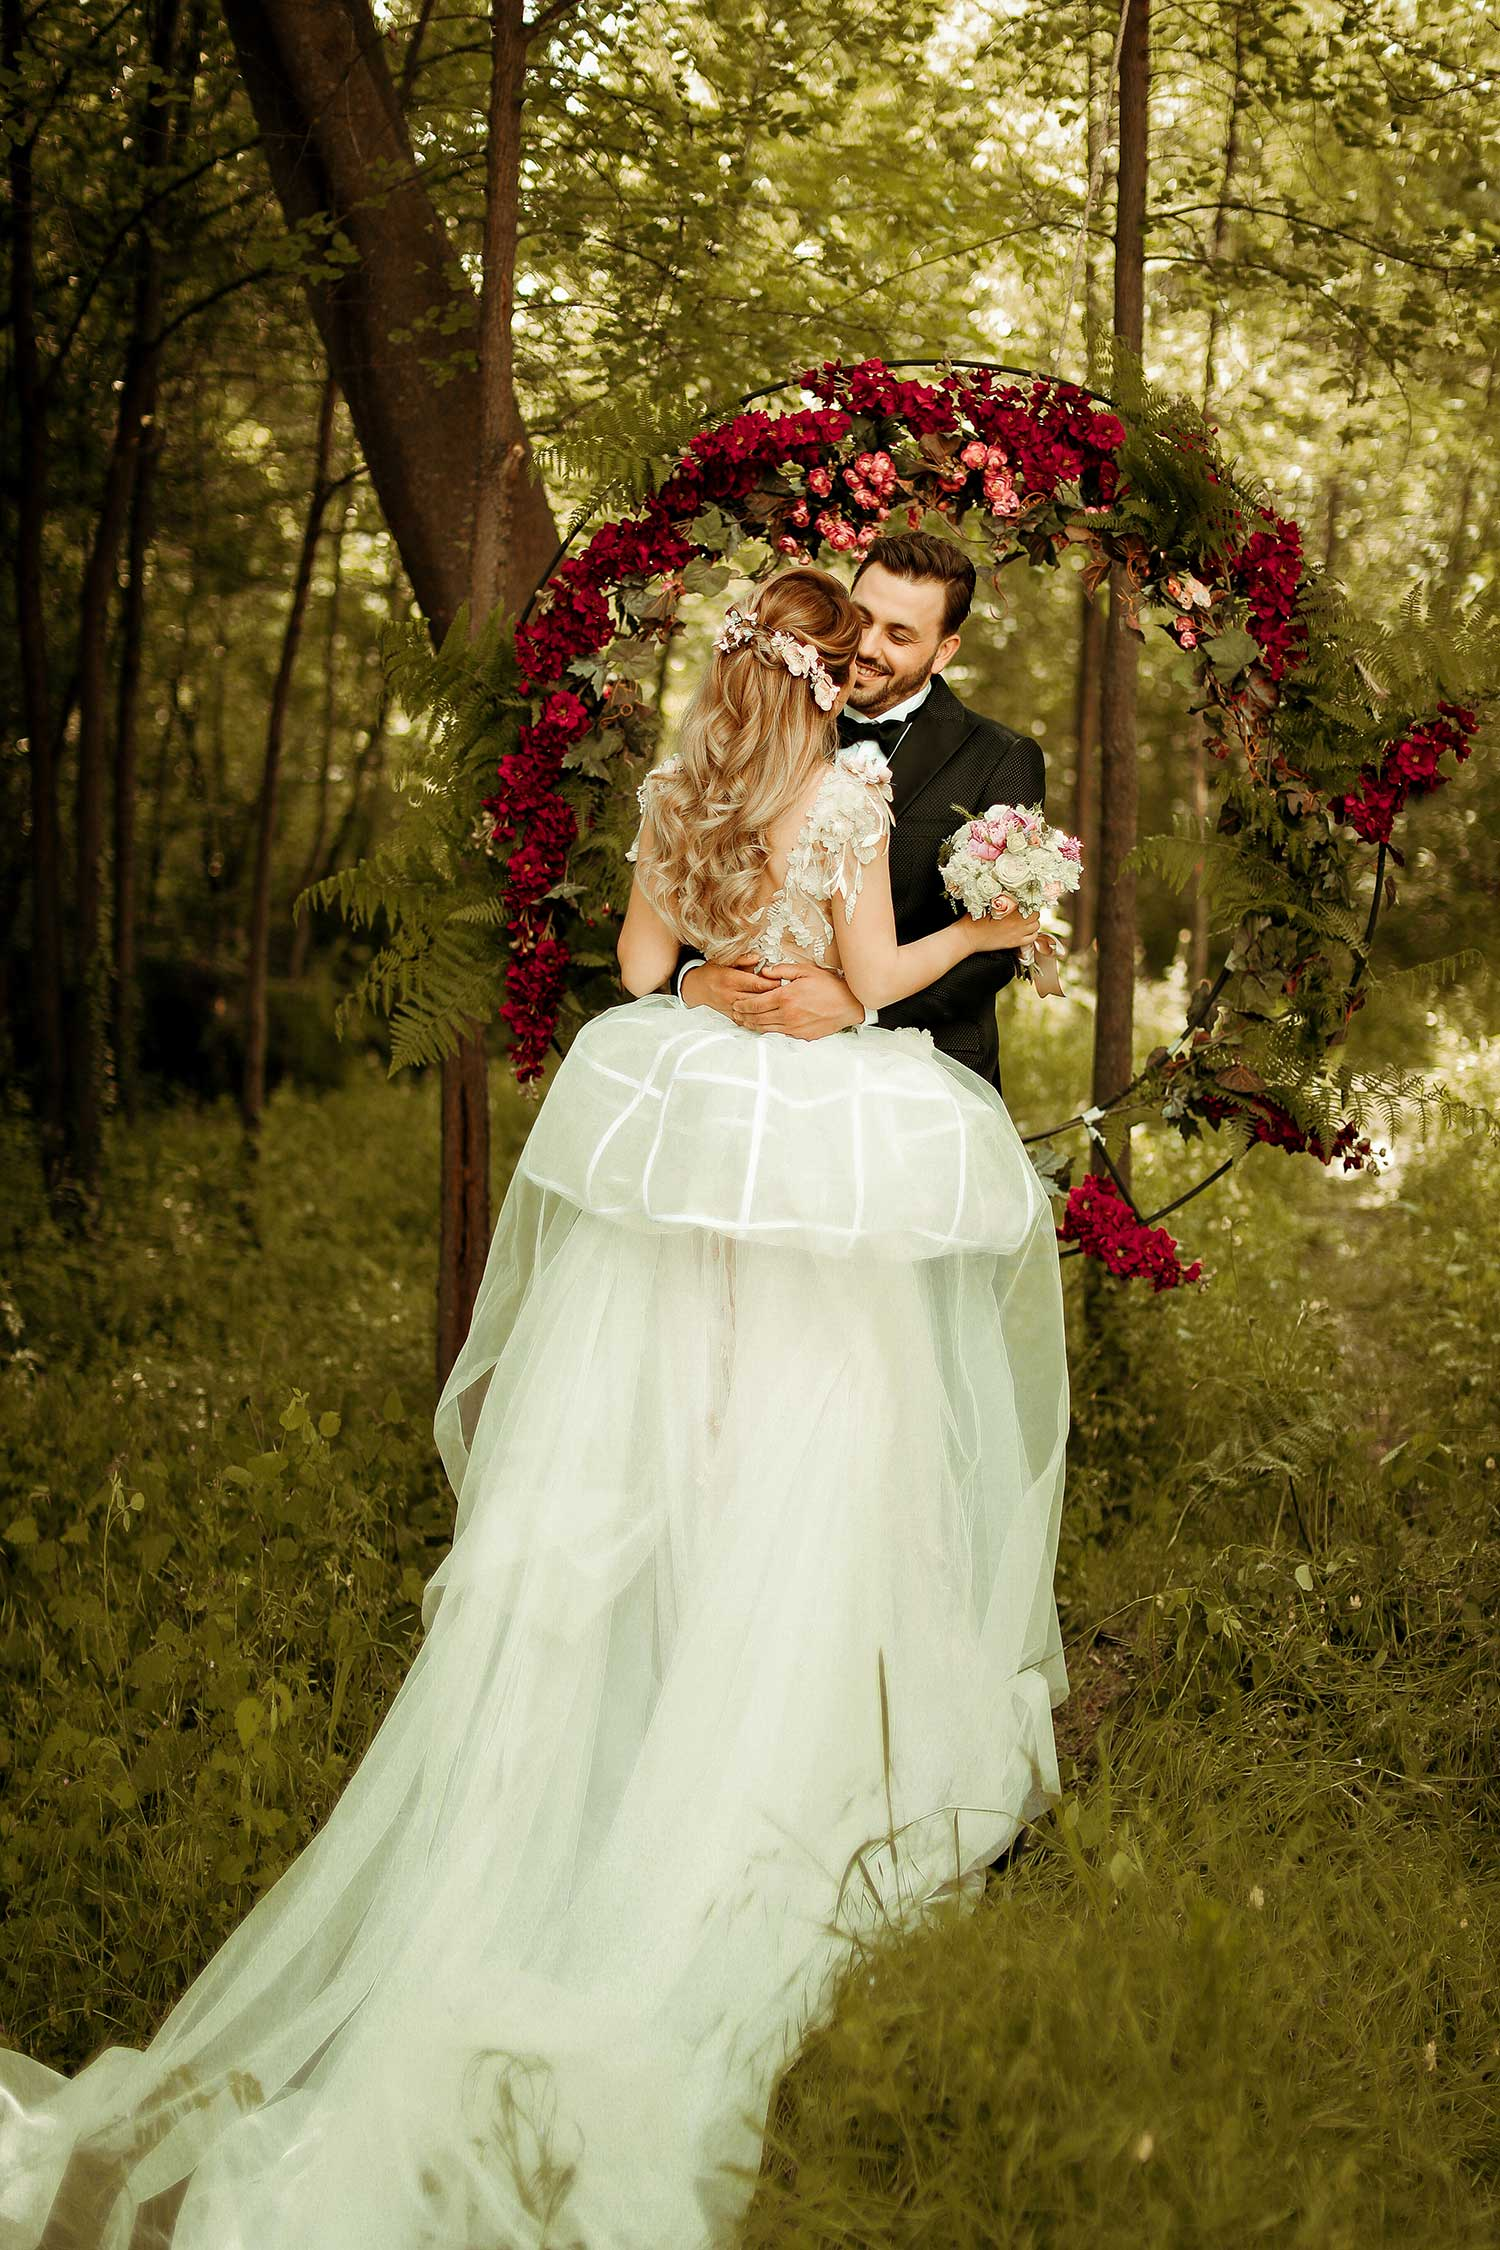 Bride and groom posing with red flowers